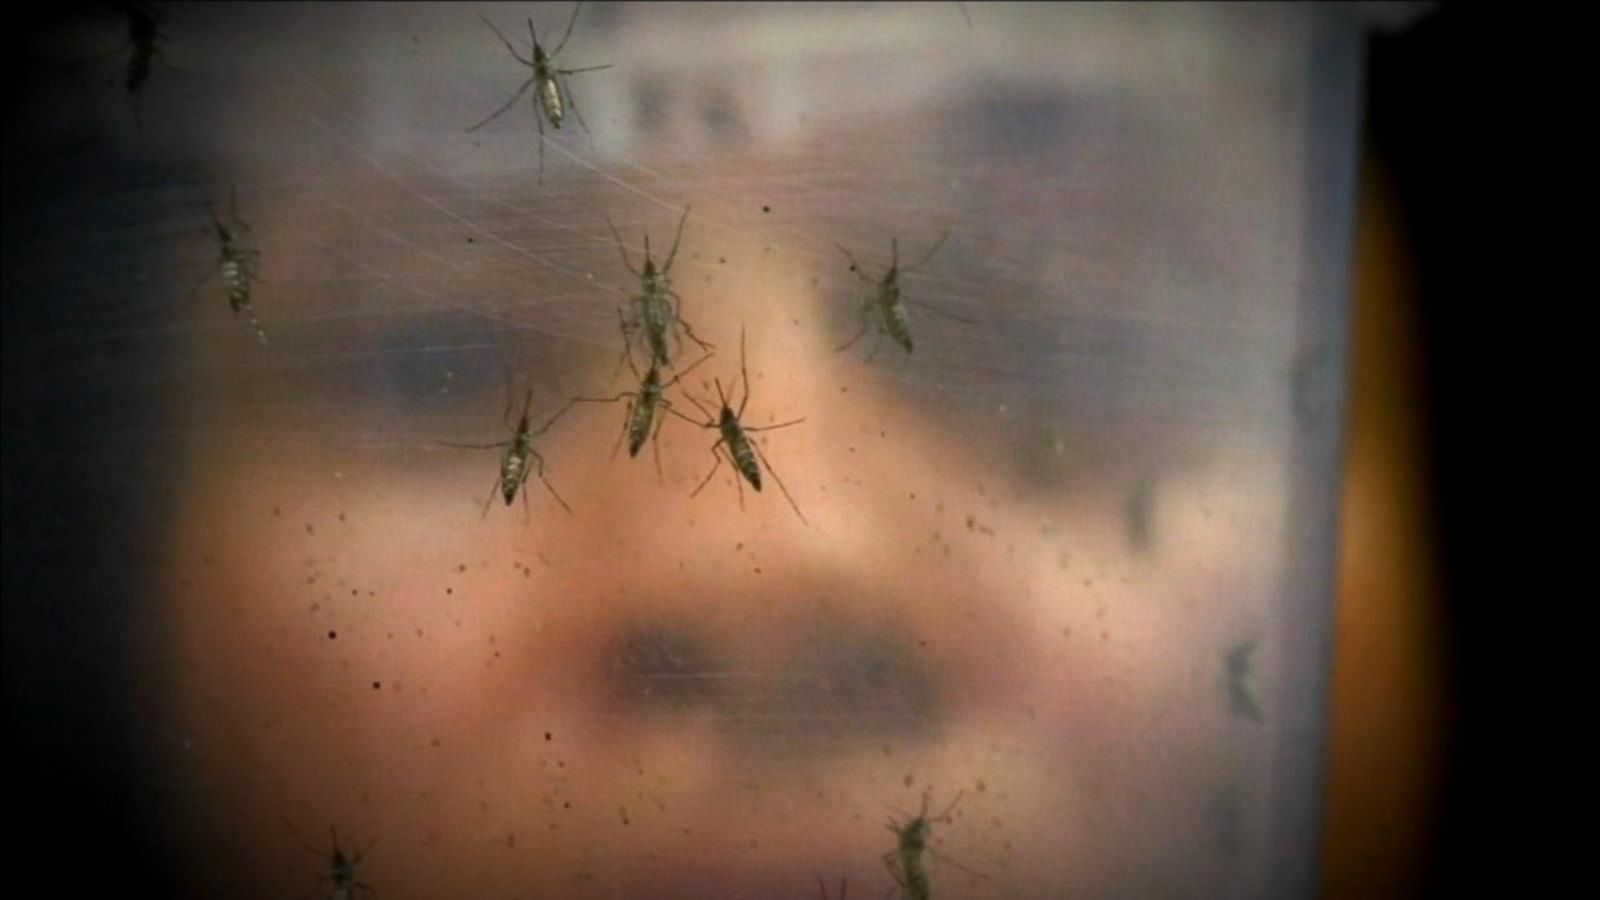 Five NYC infants have been born with Zika-related birth defects this year.